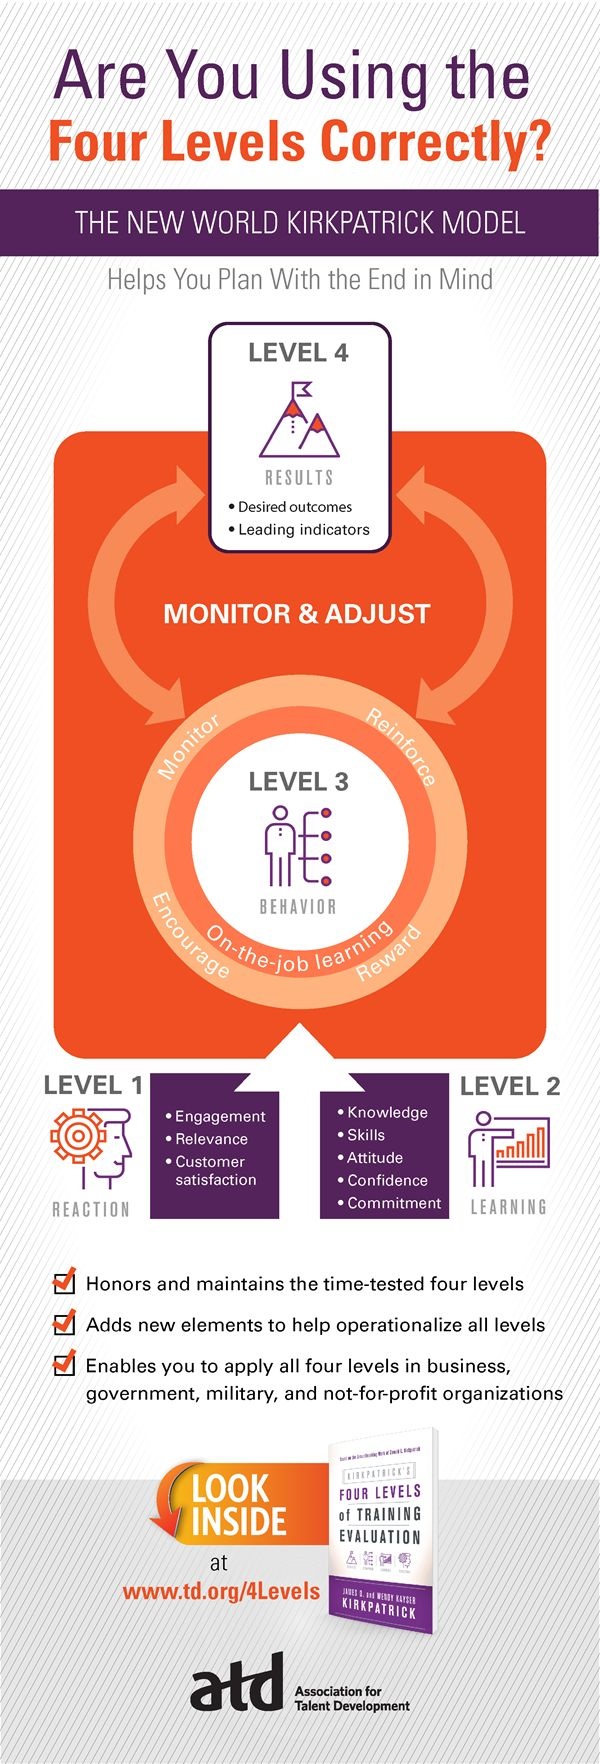 ATD-Kirkpatrick-4-Levels-Infographic